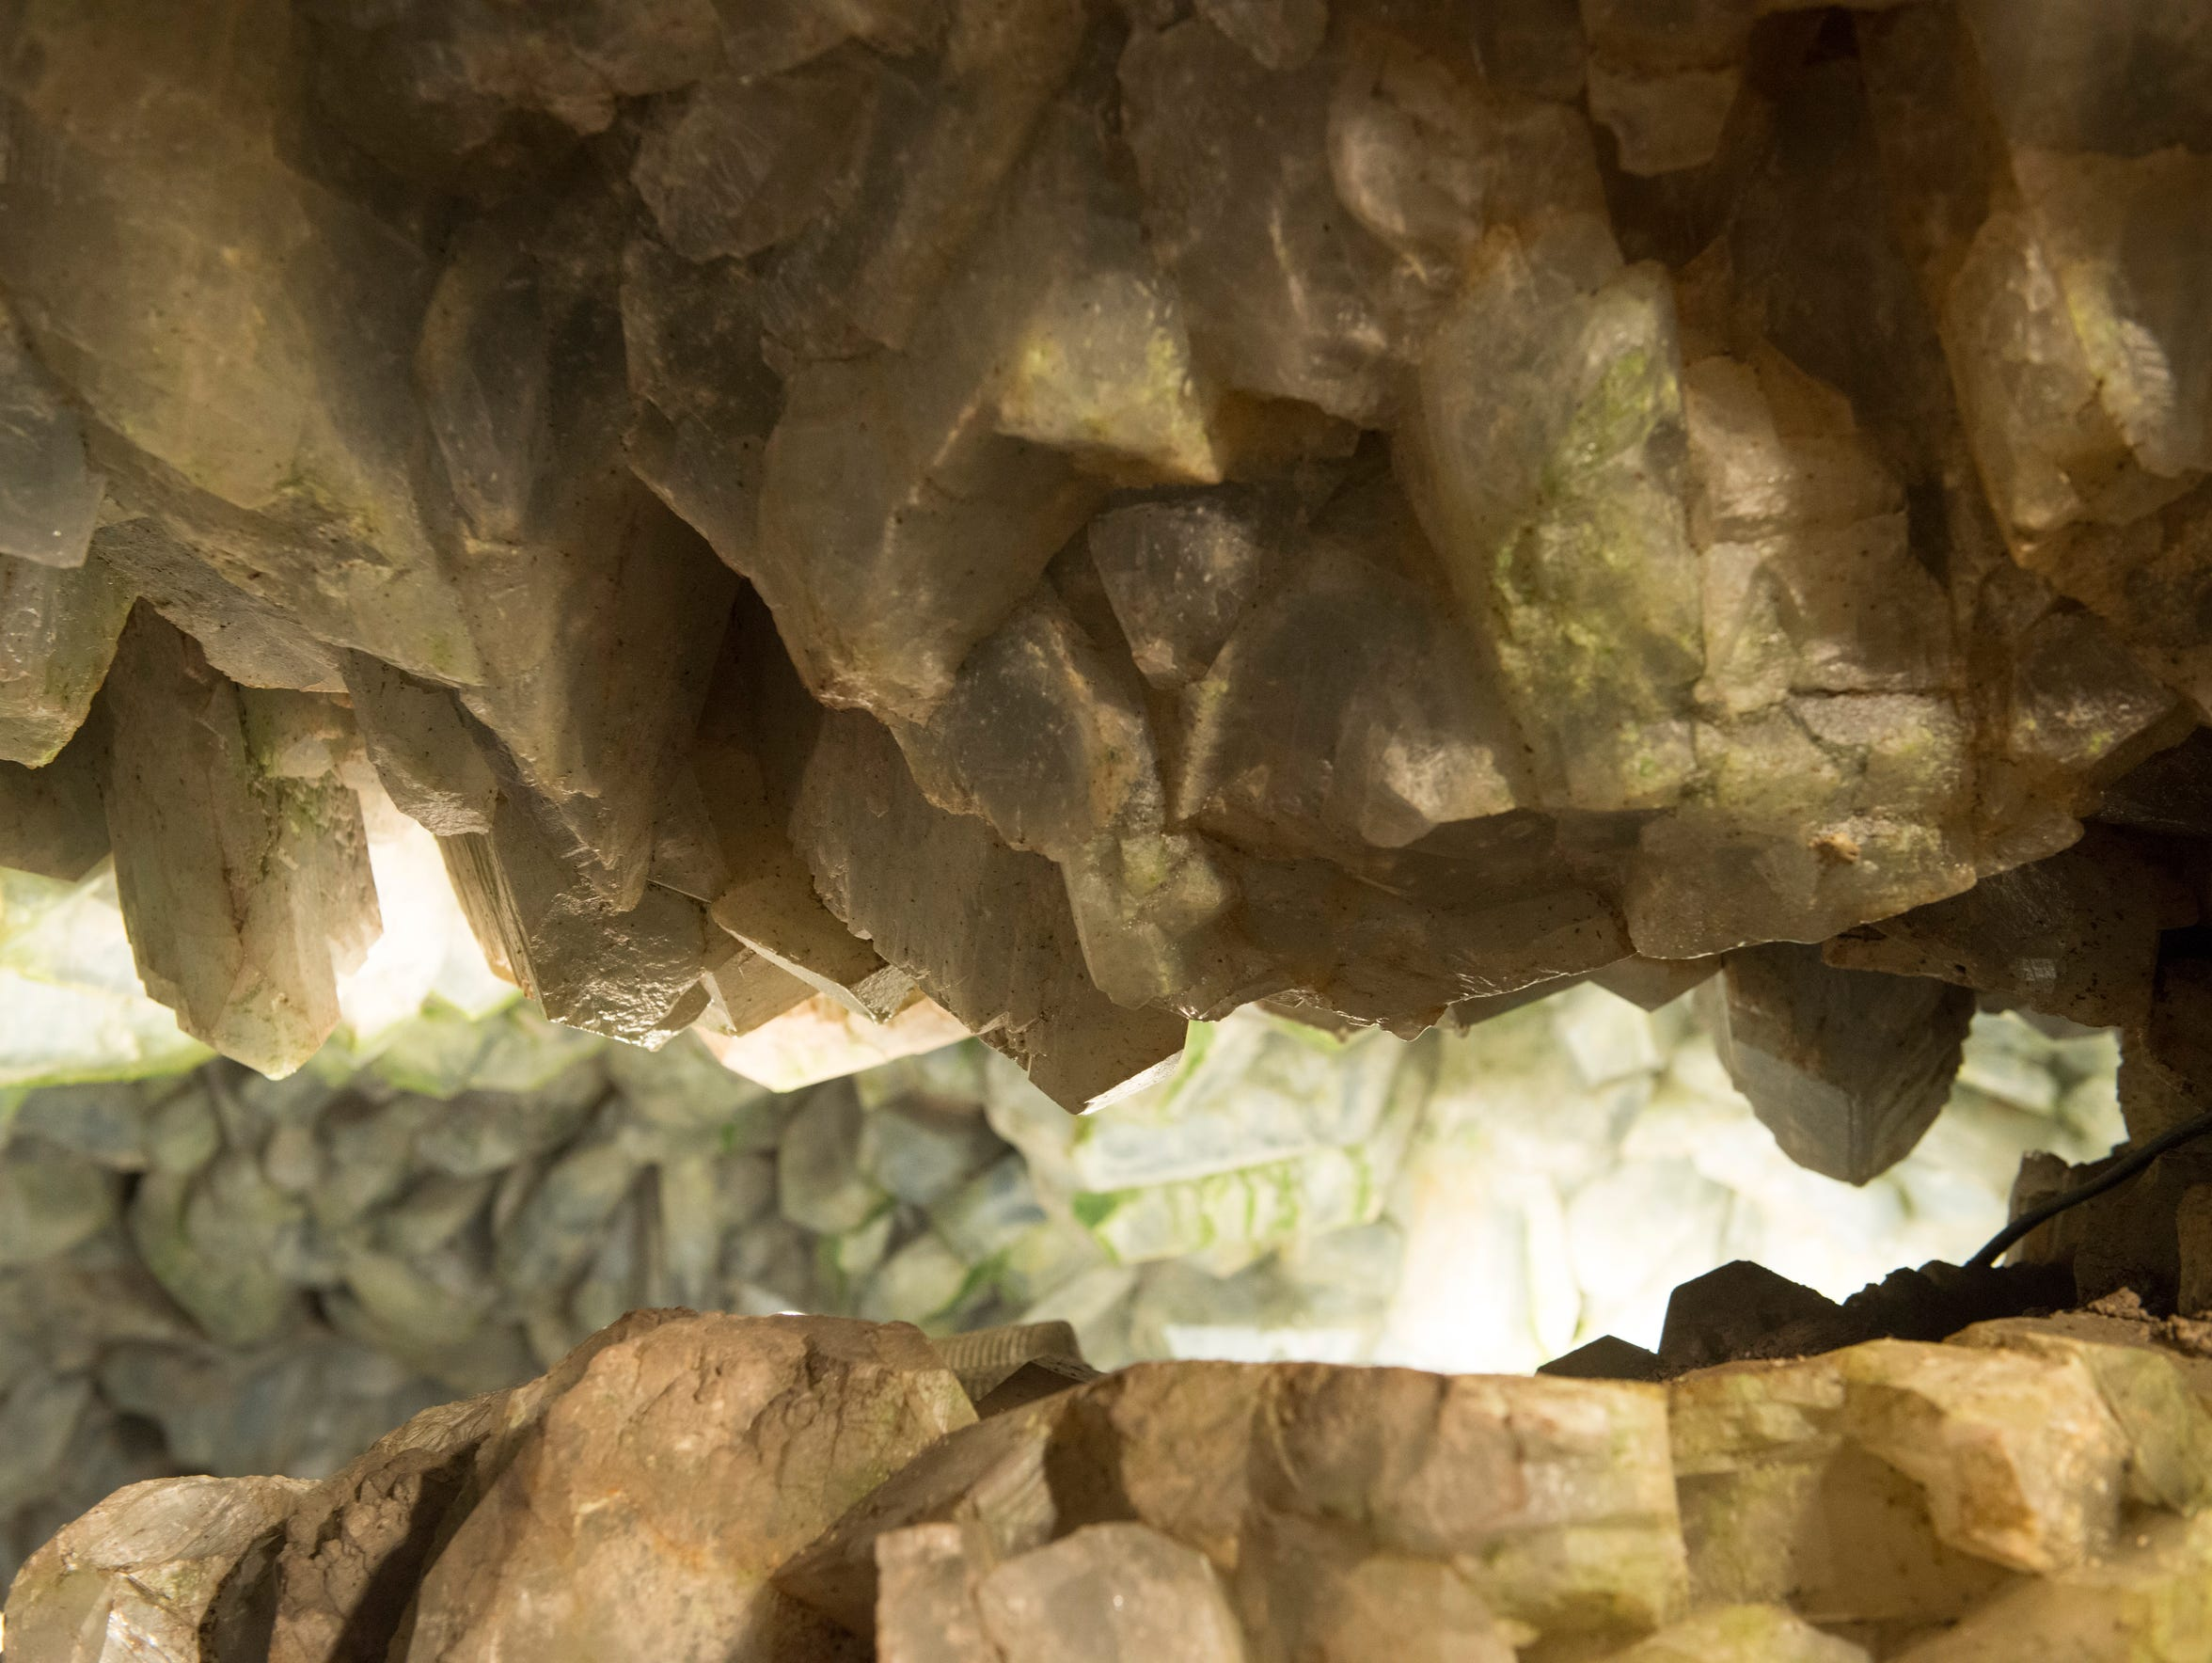 The Crystal Cave is 35 feet at the widest point, with